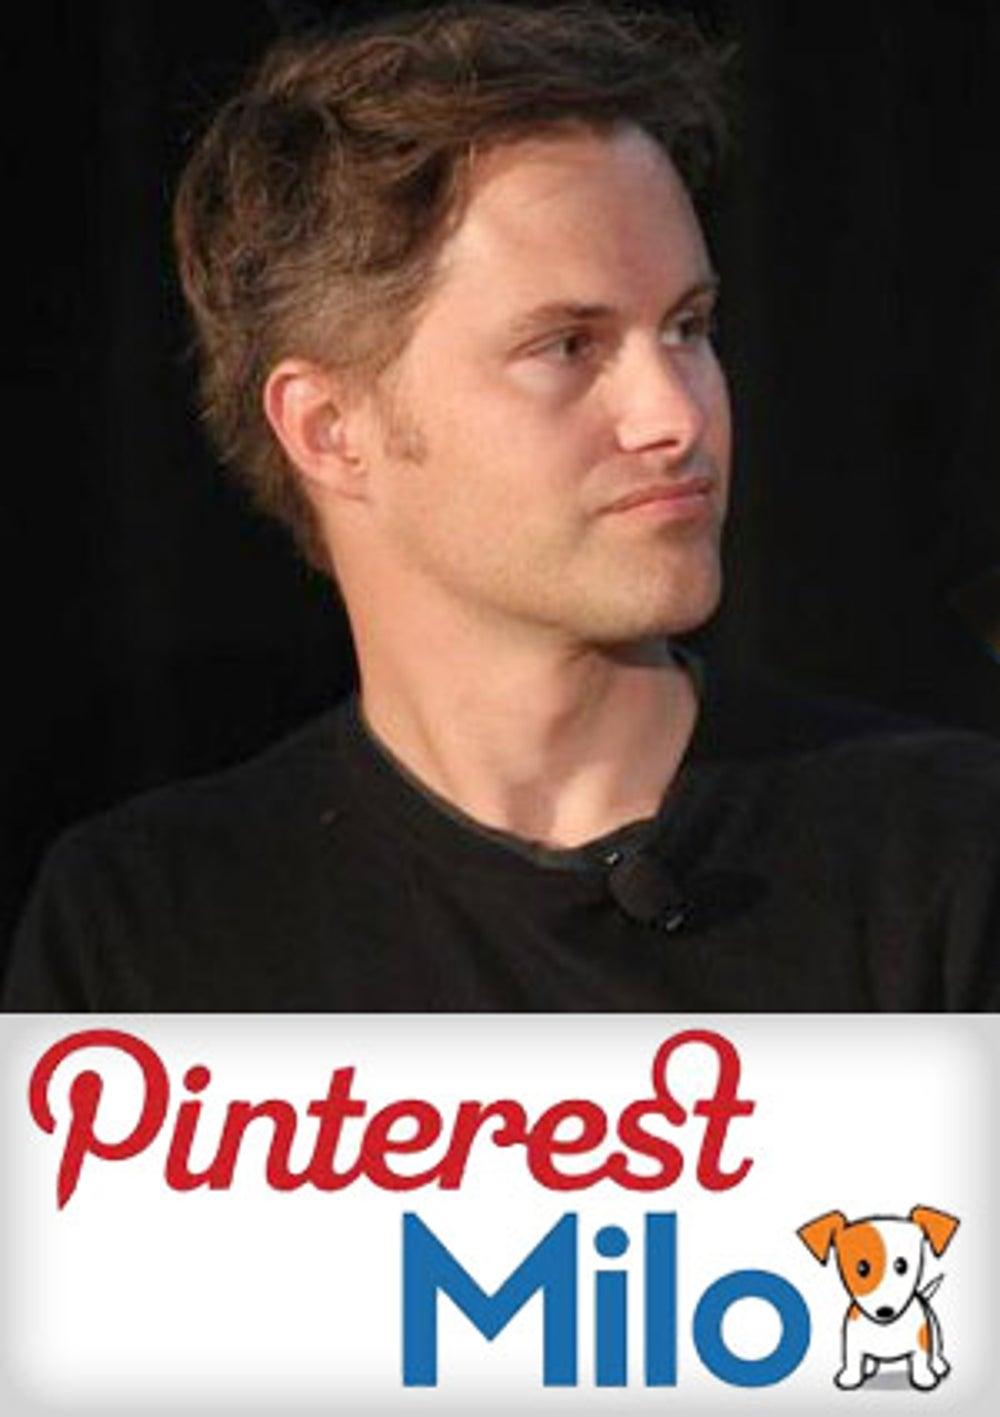 Kevin Hartz, investments: Pinterest and Milo